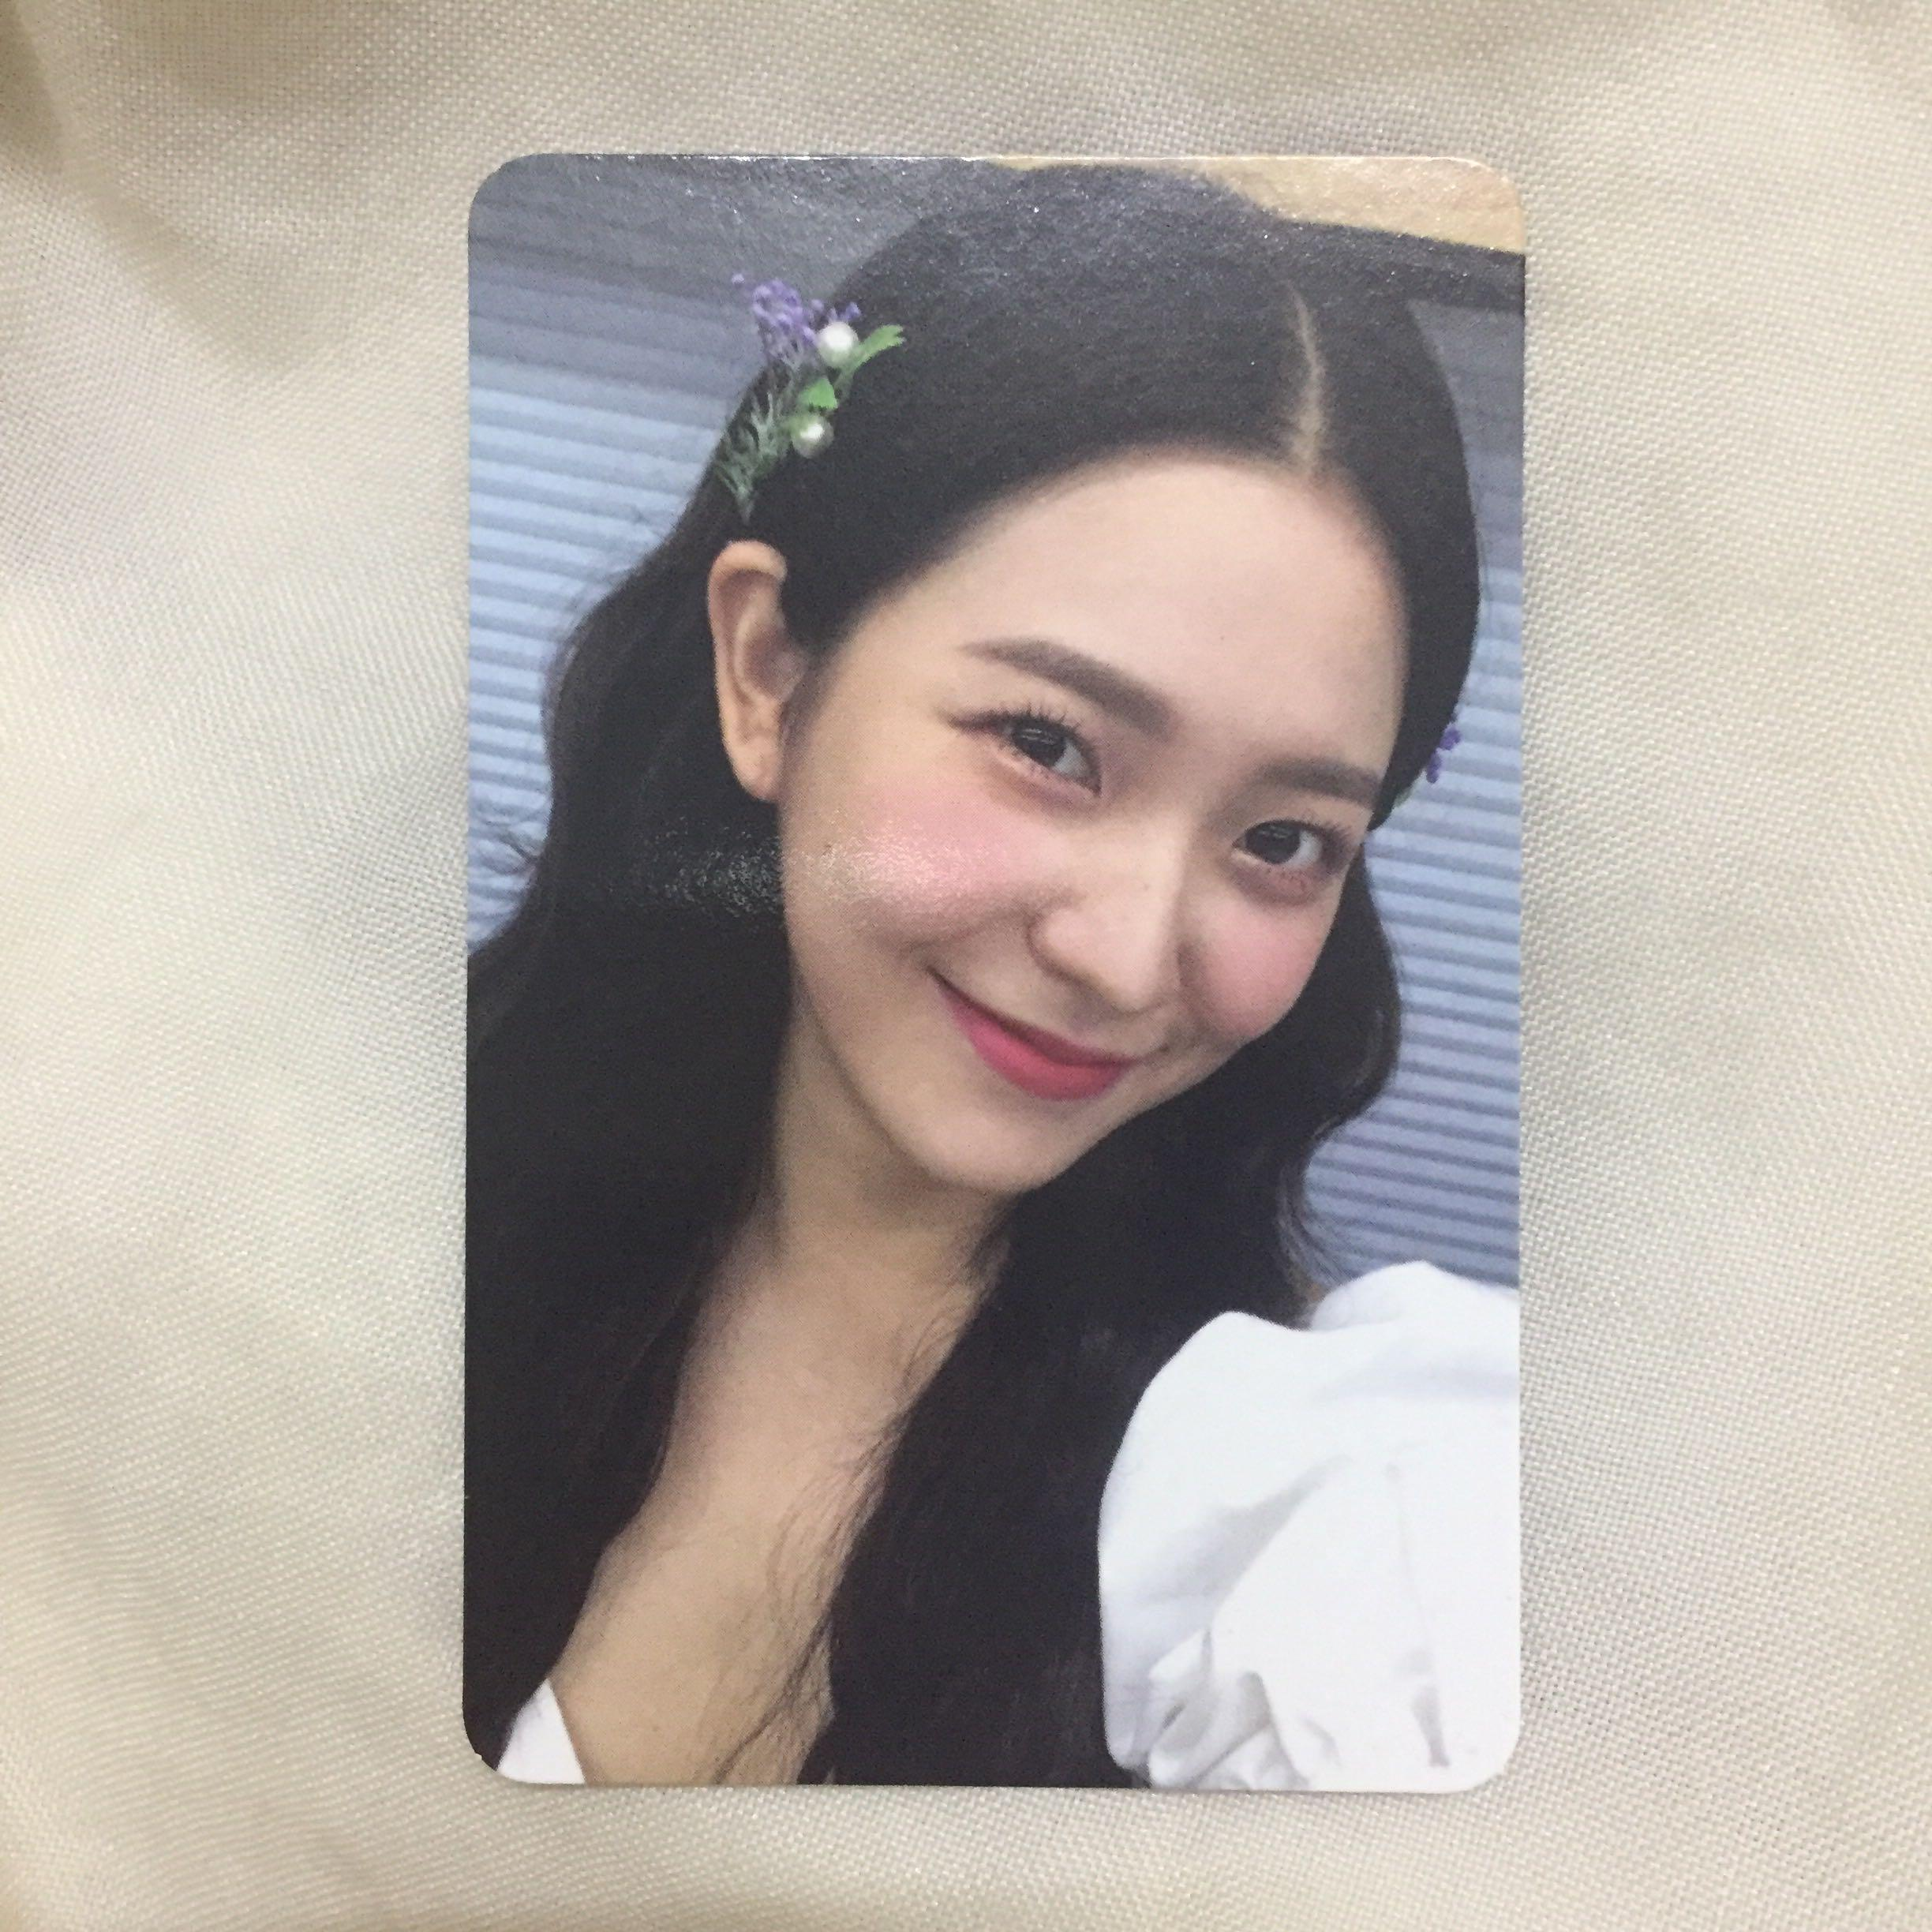 [WTS/WTT] Red Velvet  Summer Magic Yeri Limited ver Photocard